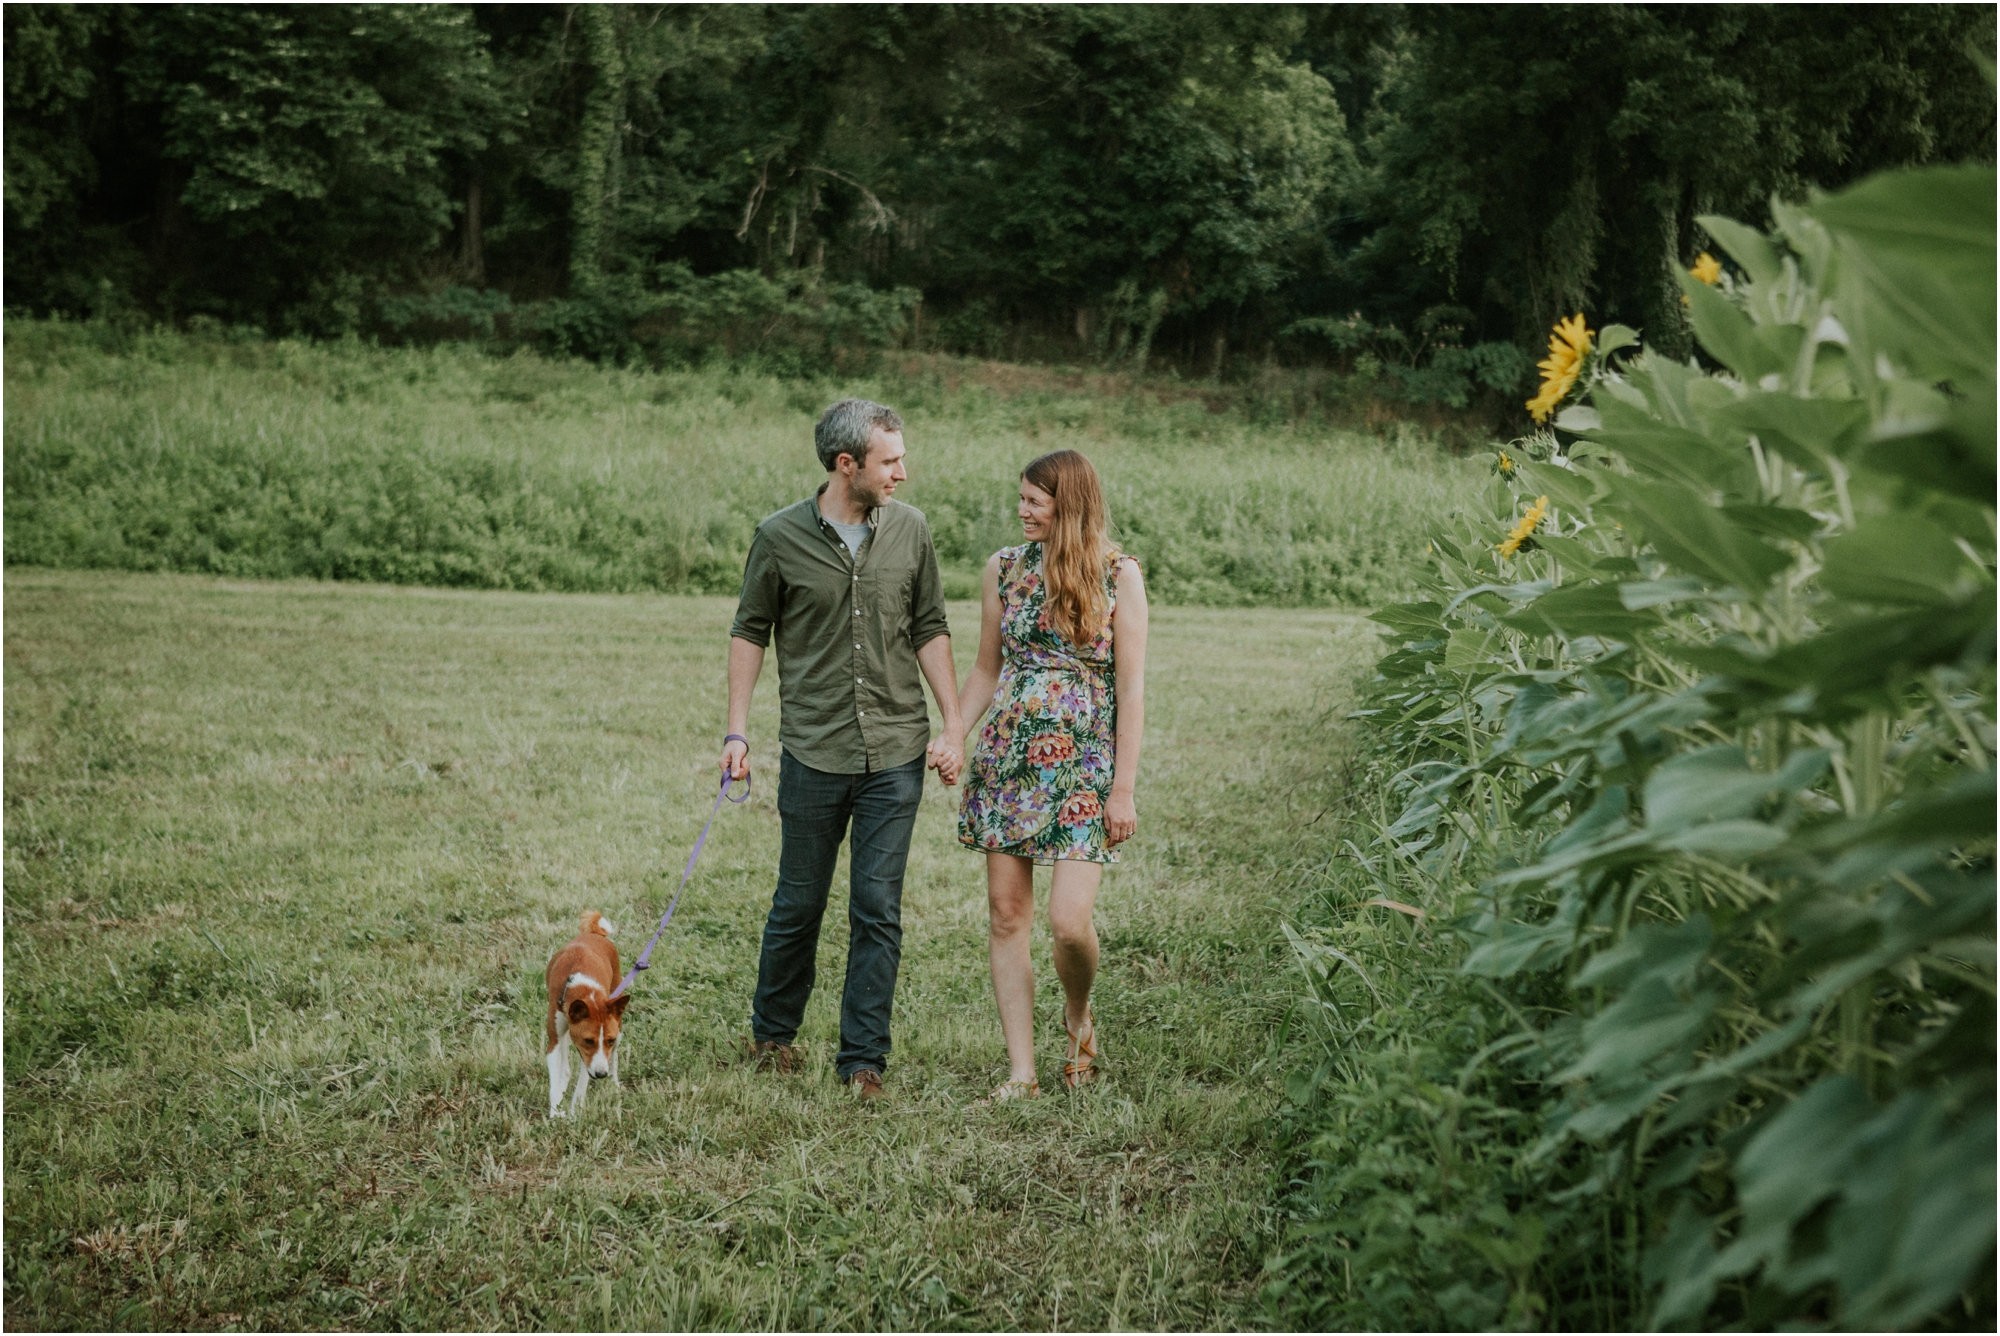 meads-quarry-ijams-nature-center-knoxville-tennessee-engagement-session-summer-northeast-tn-adventurous-outdoors-lake-katy-sergent_0041.jpg